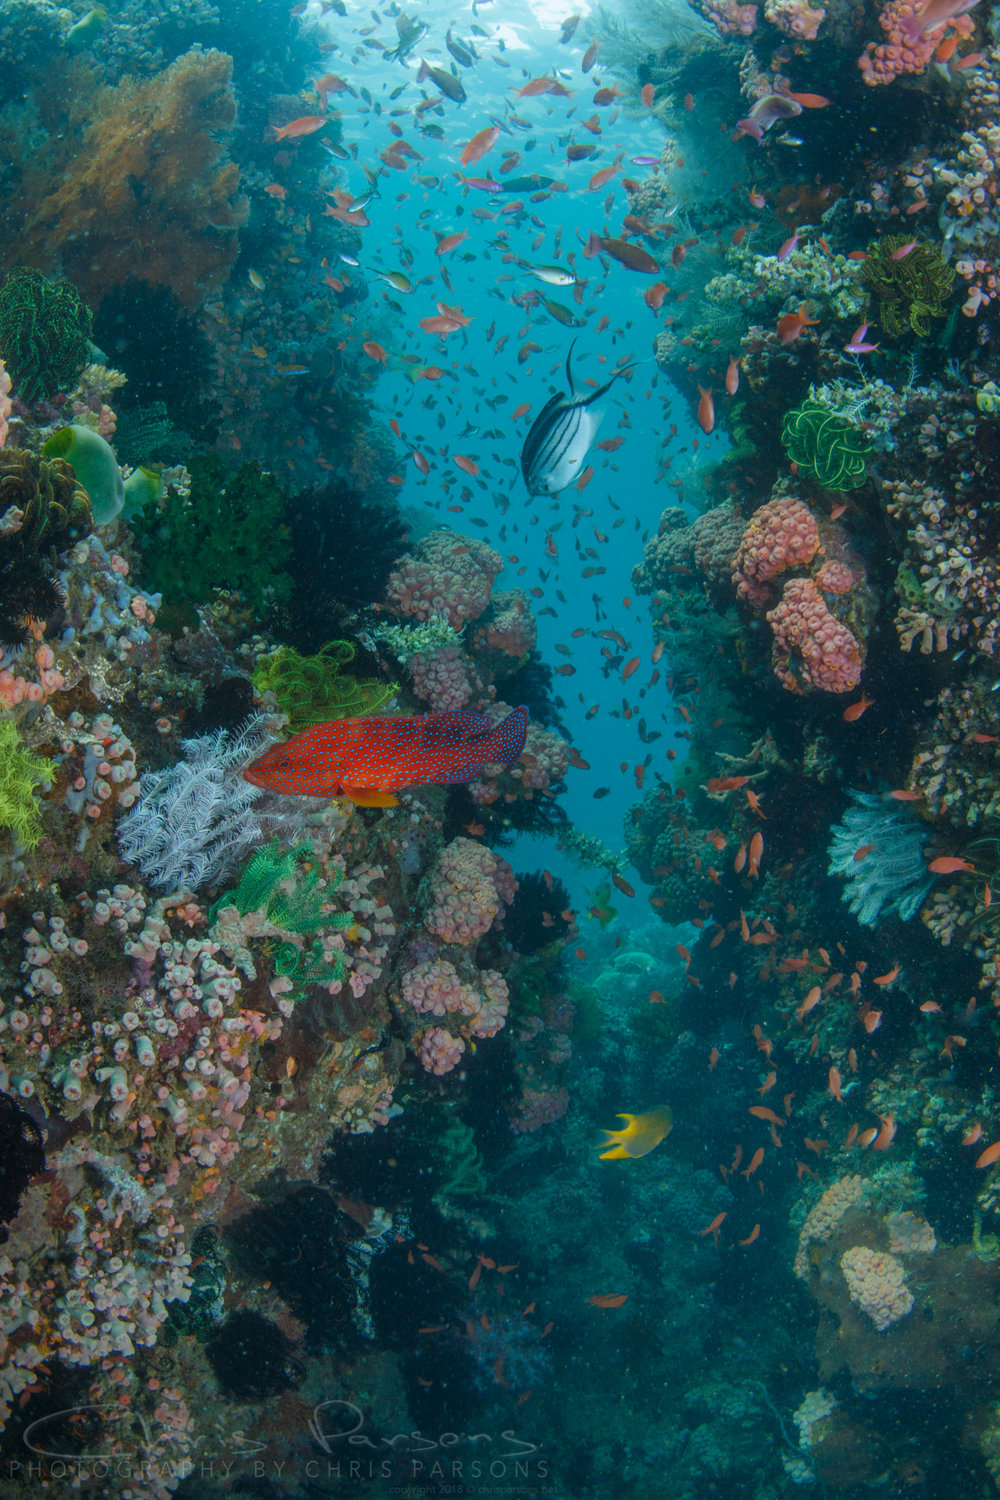 At the dive site called Twin Rocks, it is tough to decide whether to shoot wide or macro. With some lens setups, like the Nauticam wet wide lenses, you don't have to choose.